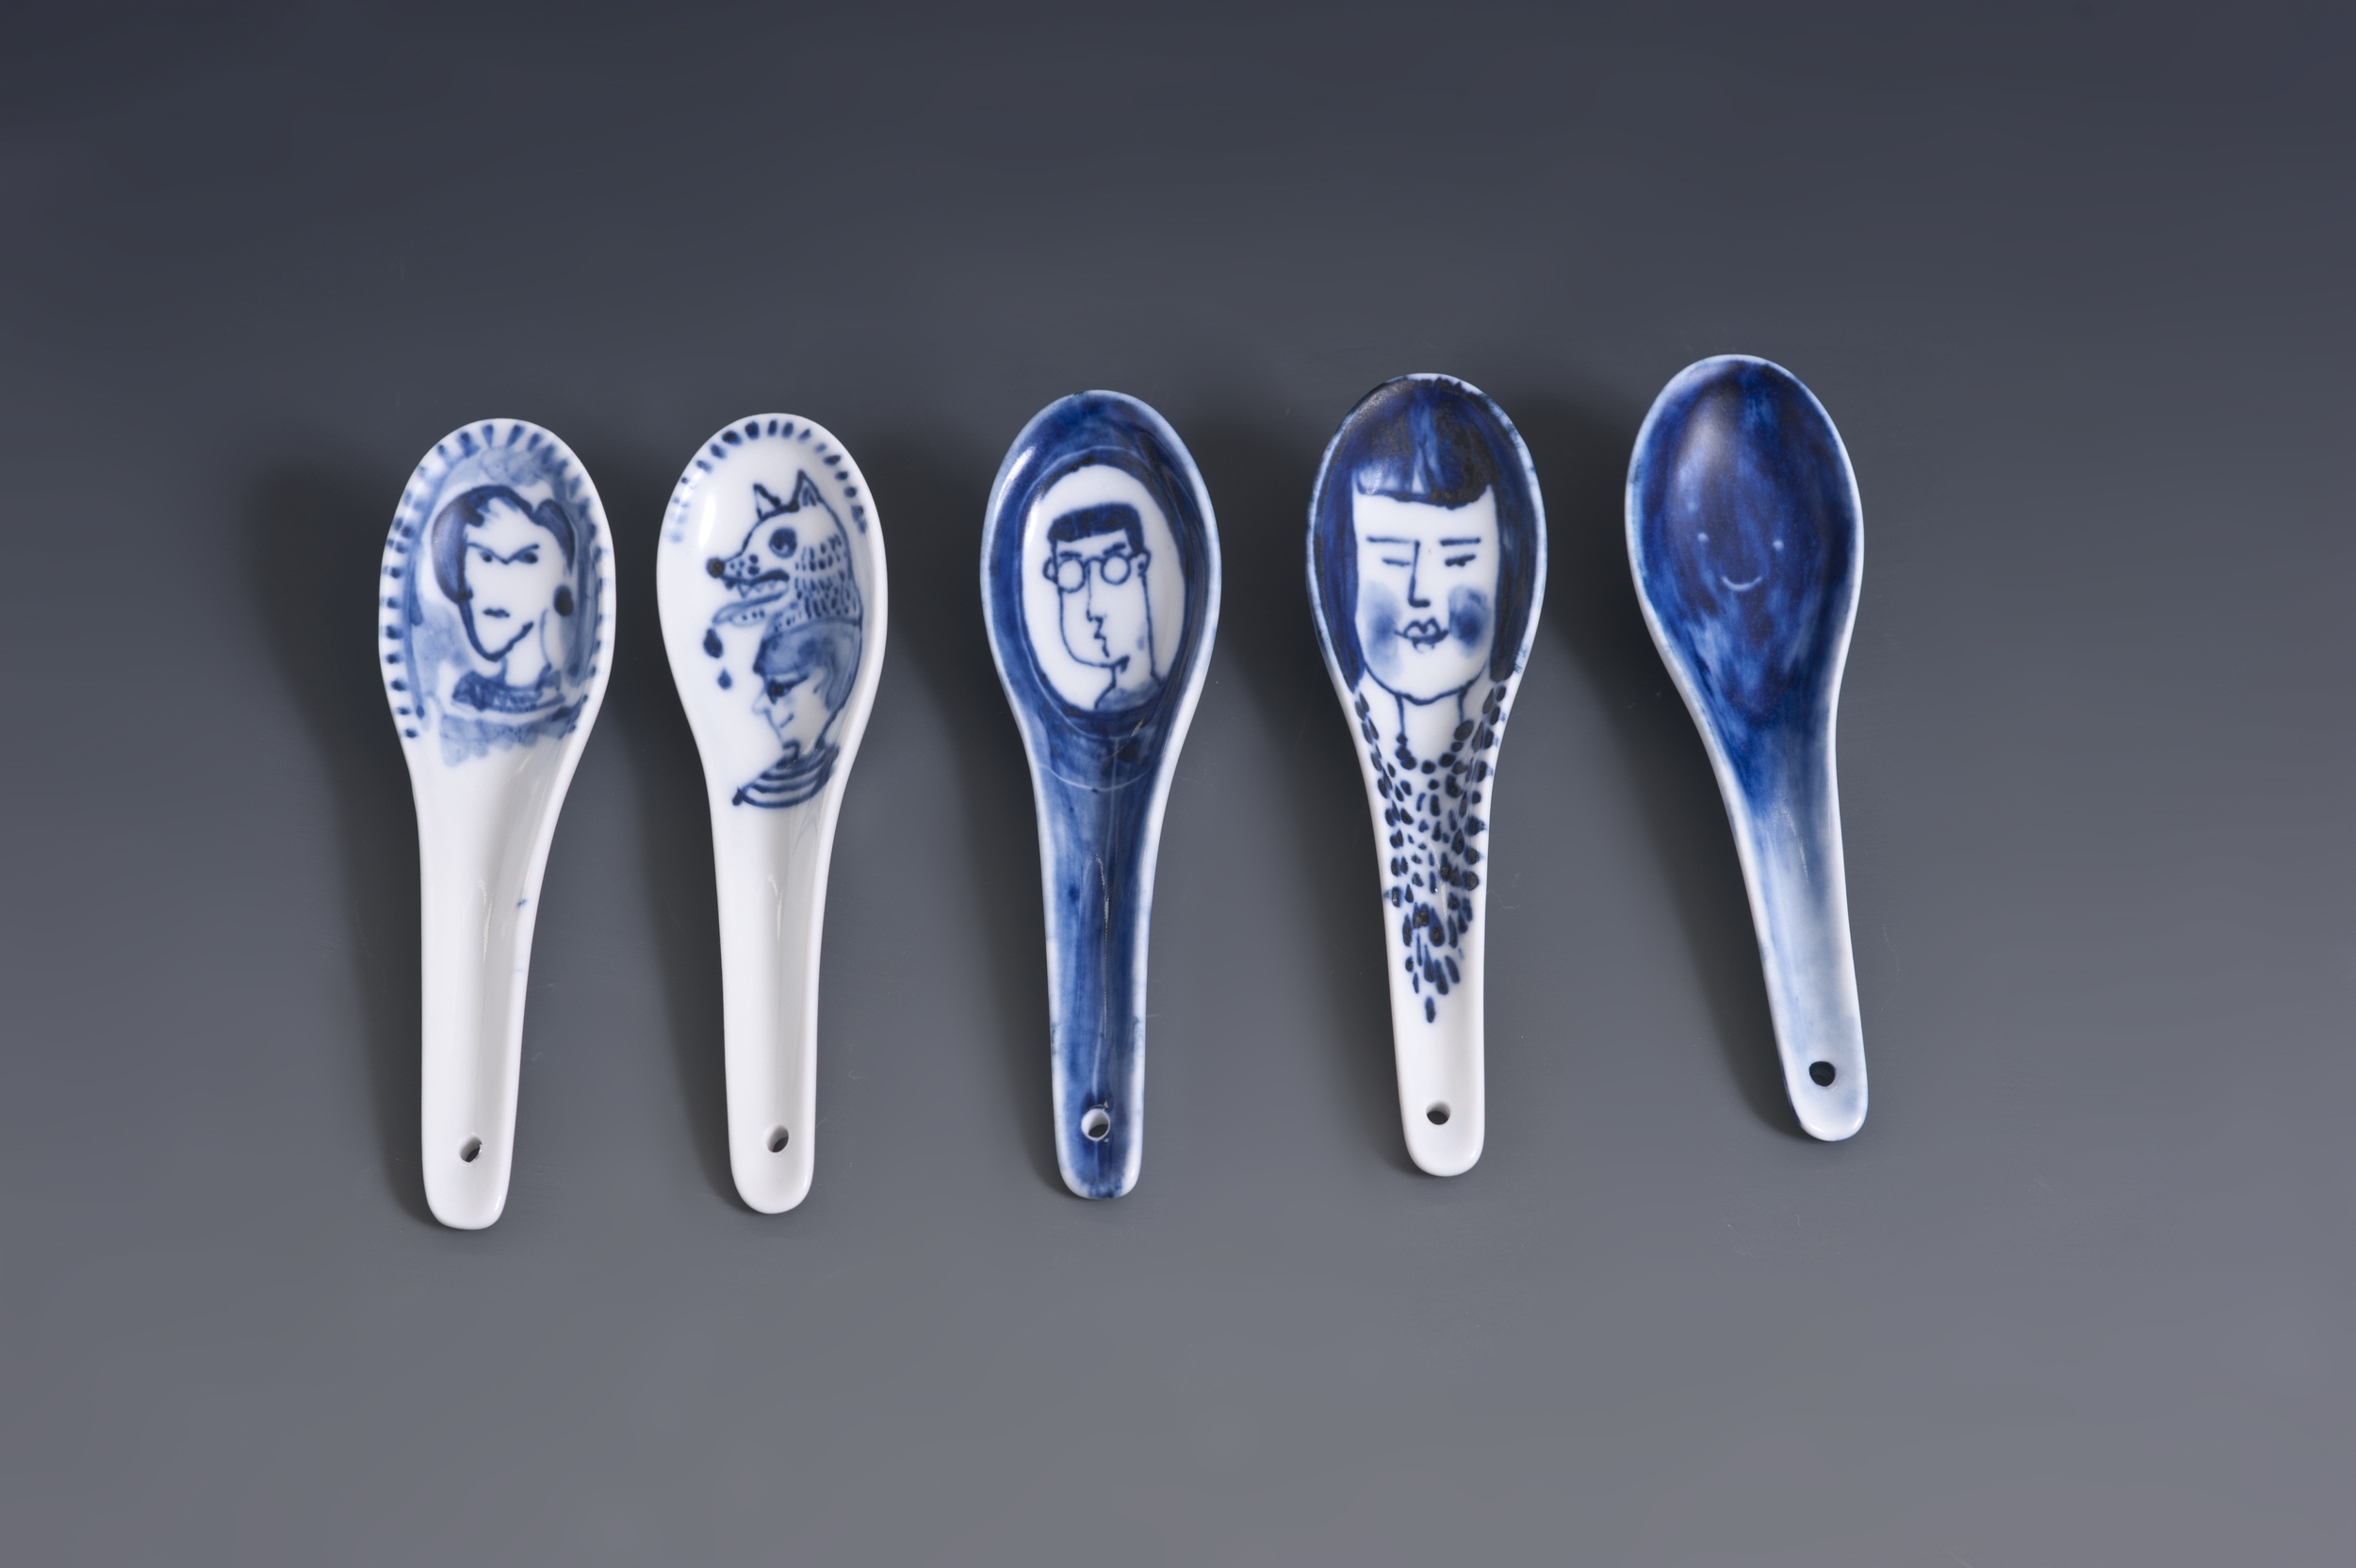 The Country I Missed (Spoon Project)